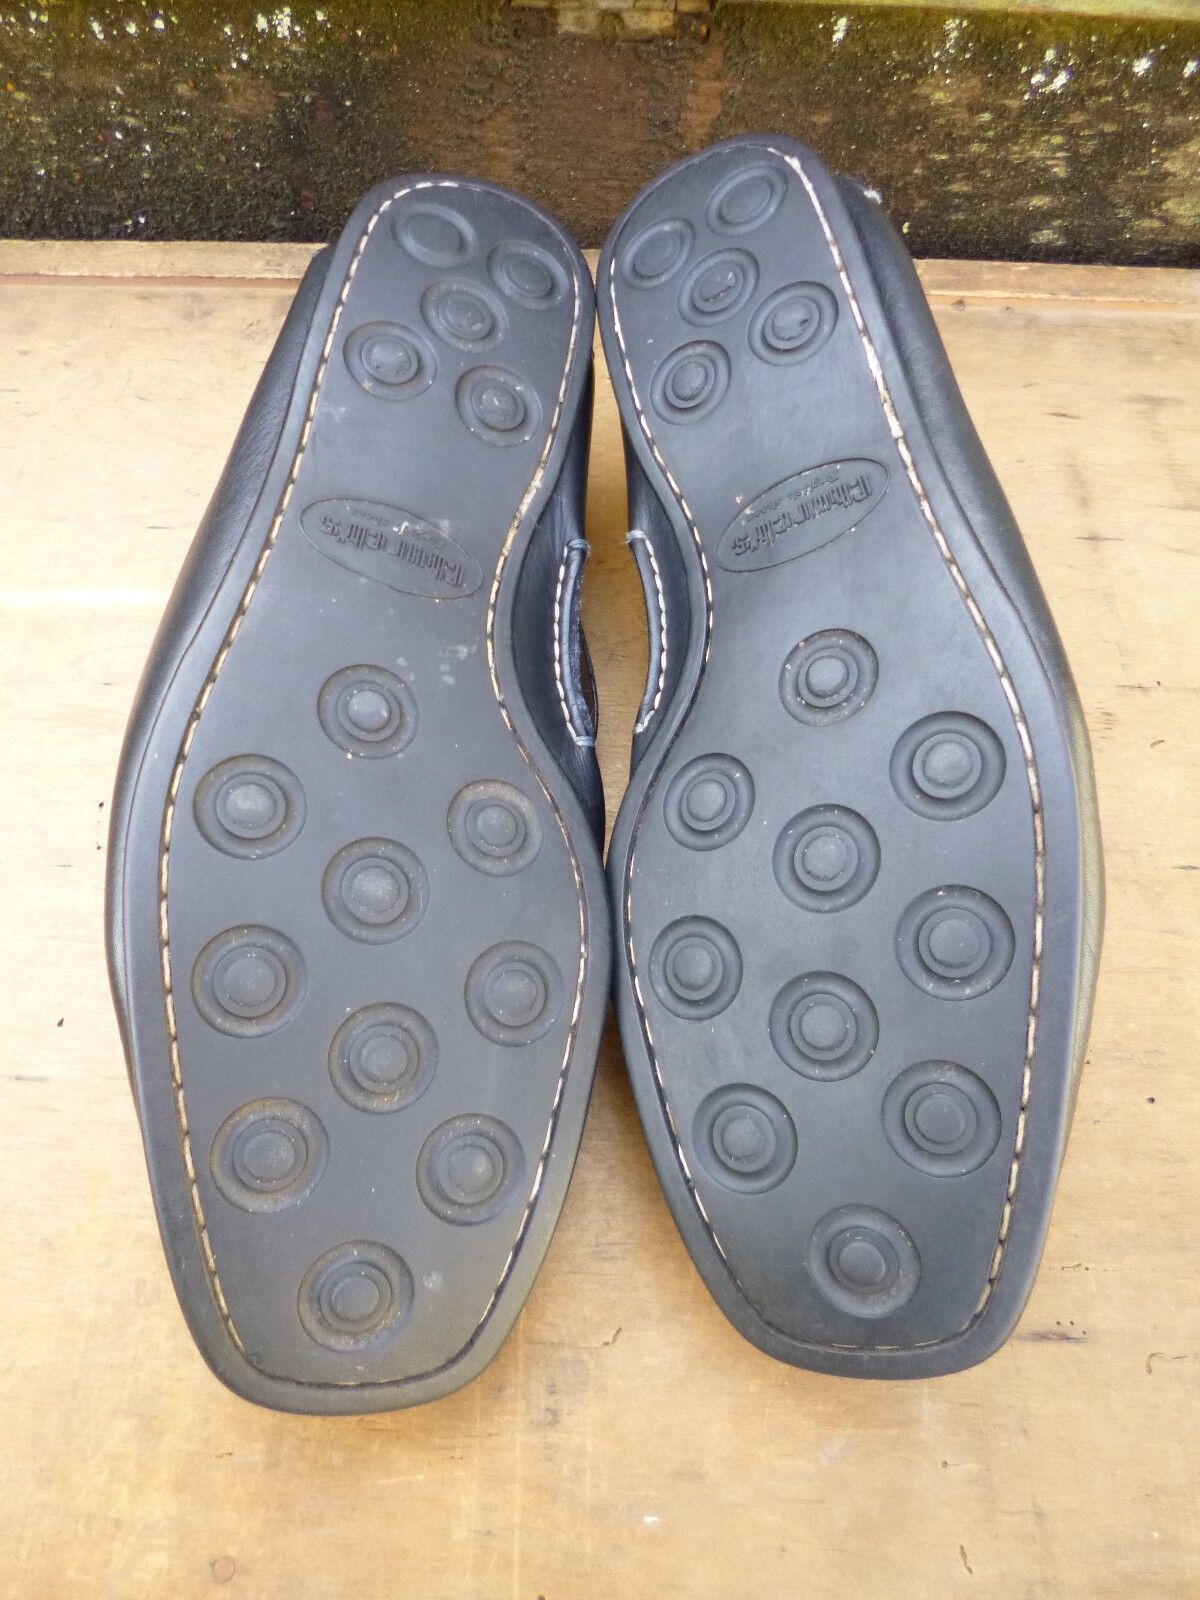 CHURCH CHURCH CHURCH LOAFERS – schwarz – UK 8 - EXCELLENT CONDITION 2491af